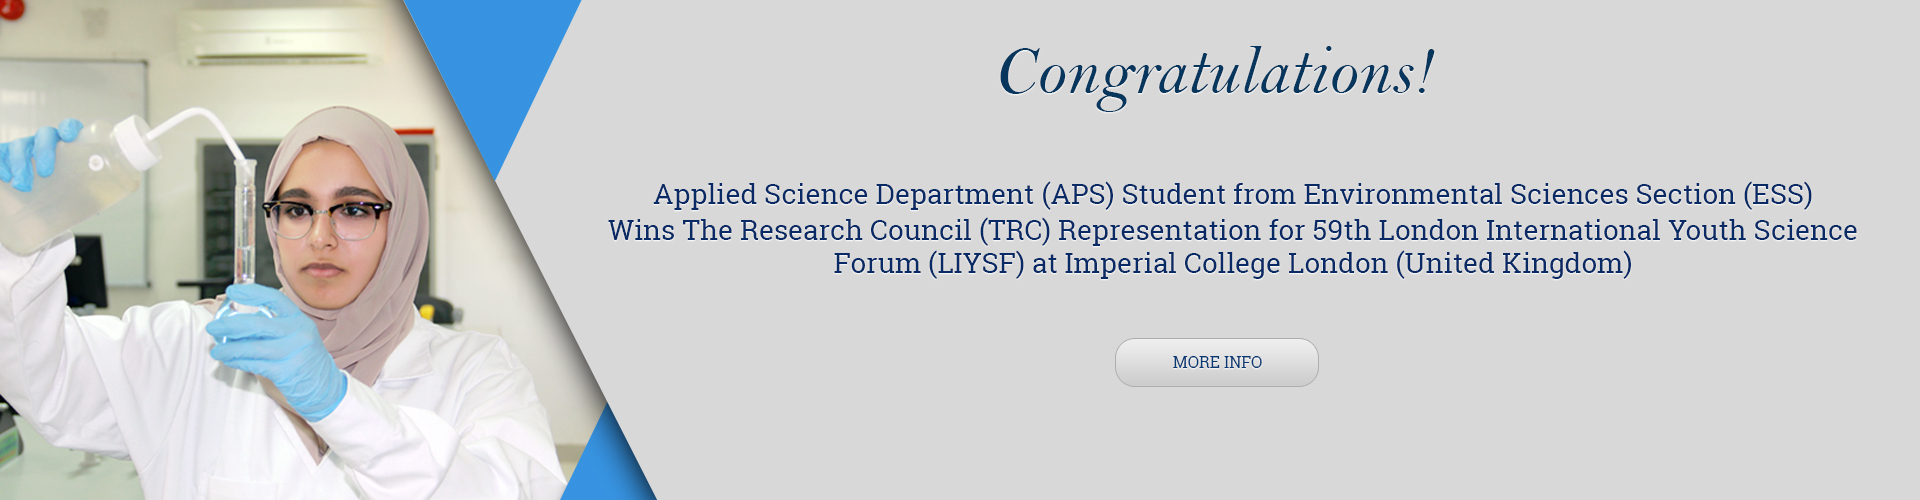 Applied Science Department (APS) Student from Environmental Sciences Section (ESS) Wins The Research Council (TRC) Representation for 59th London International Youth Science Forum (LIYSF) at Imperial College London (United Kingdom)